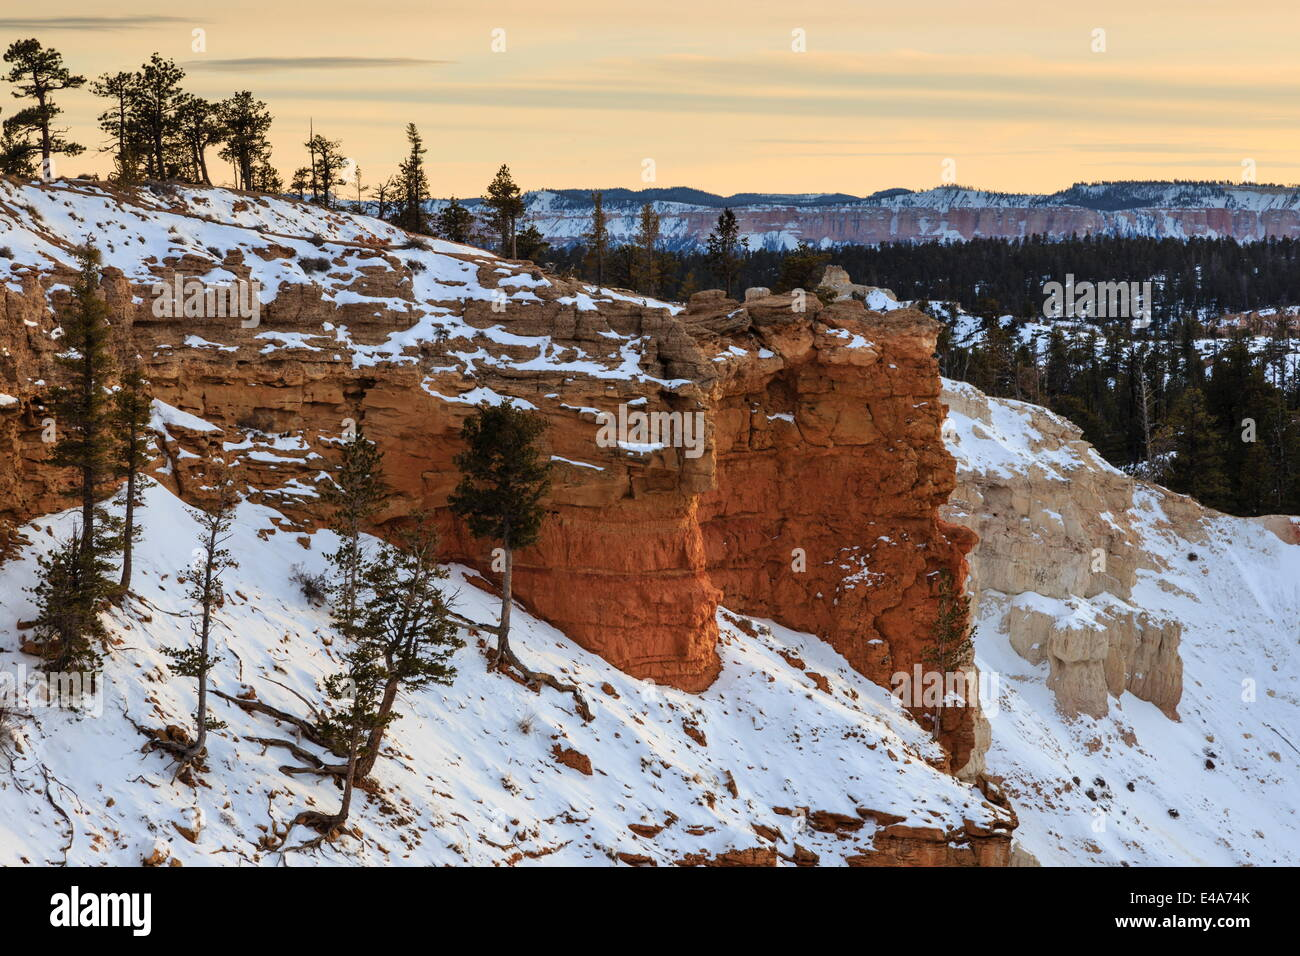 Snowy cliffs of the rim lit by weak winter's late afternoon sun, Bryce Point, Bryce Canyon National Park, Utah, - Stock Image